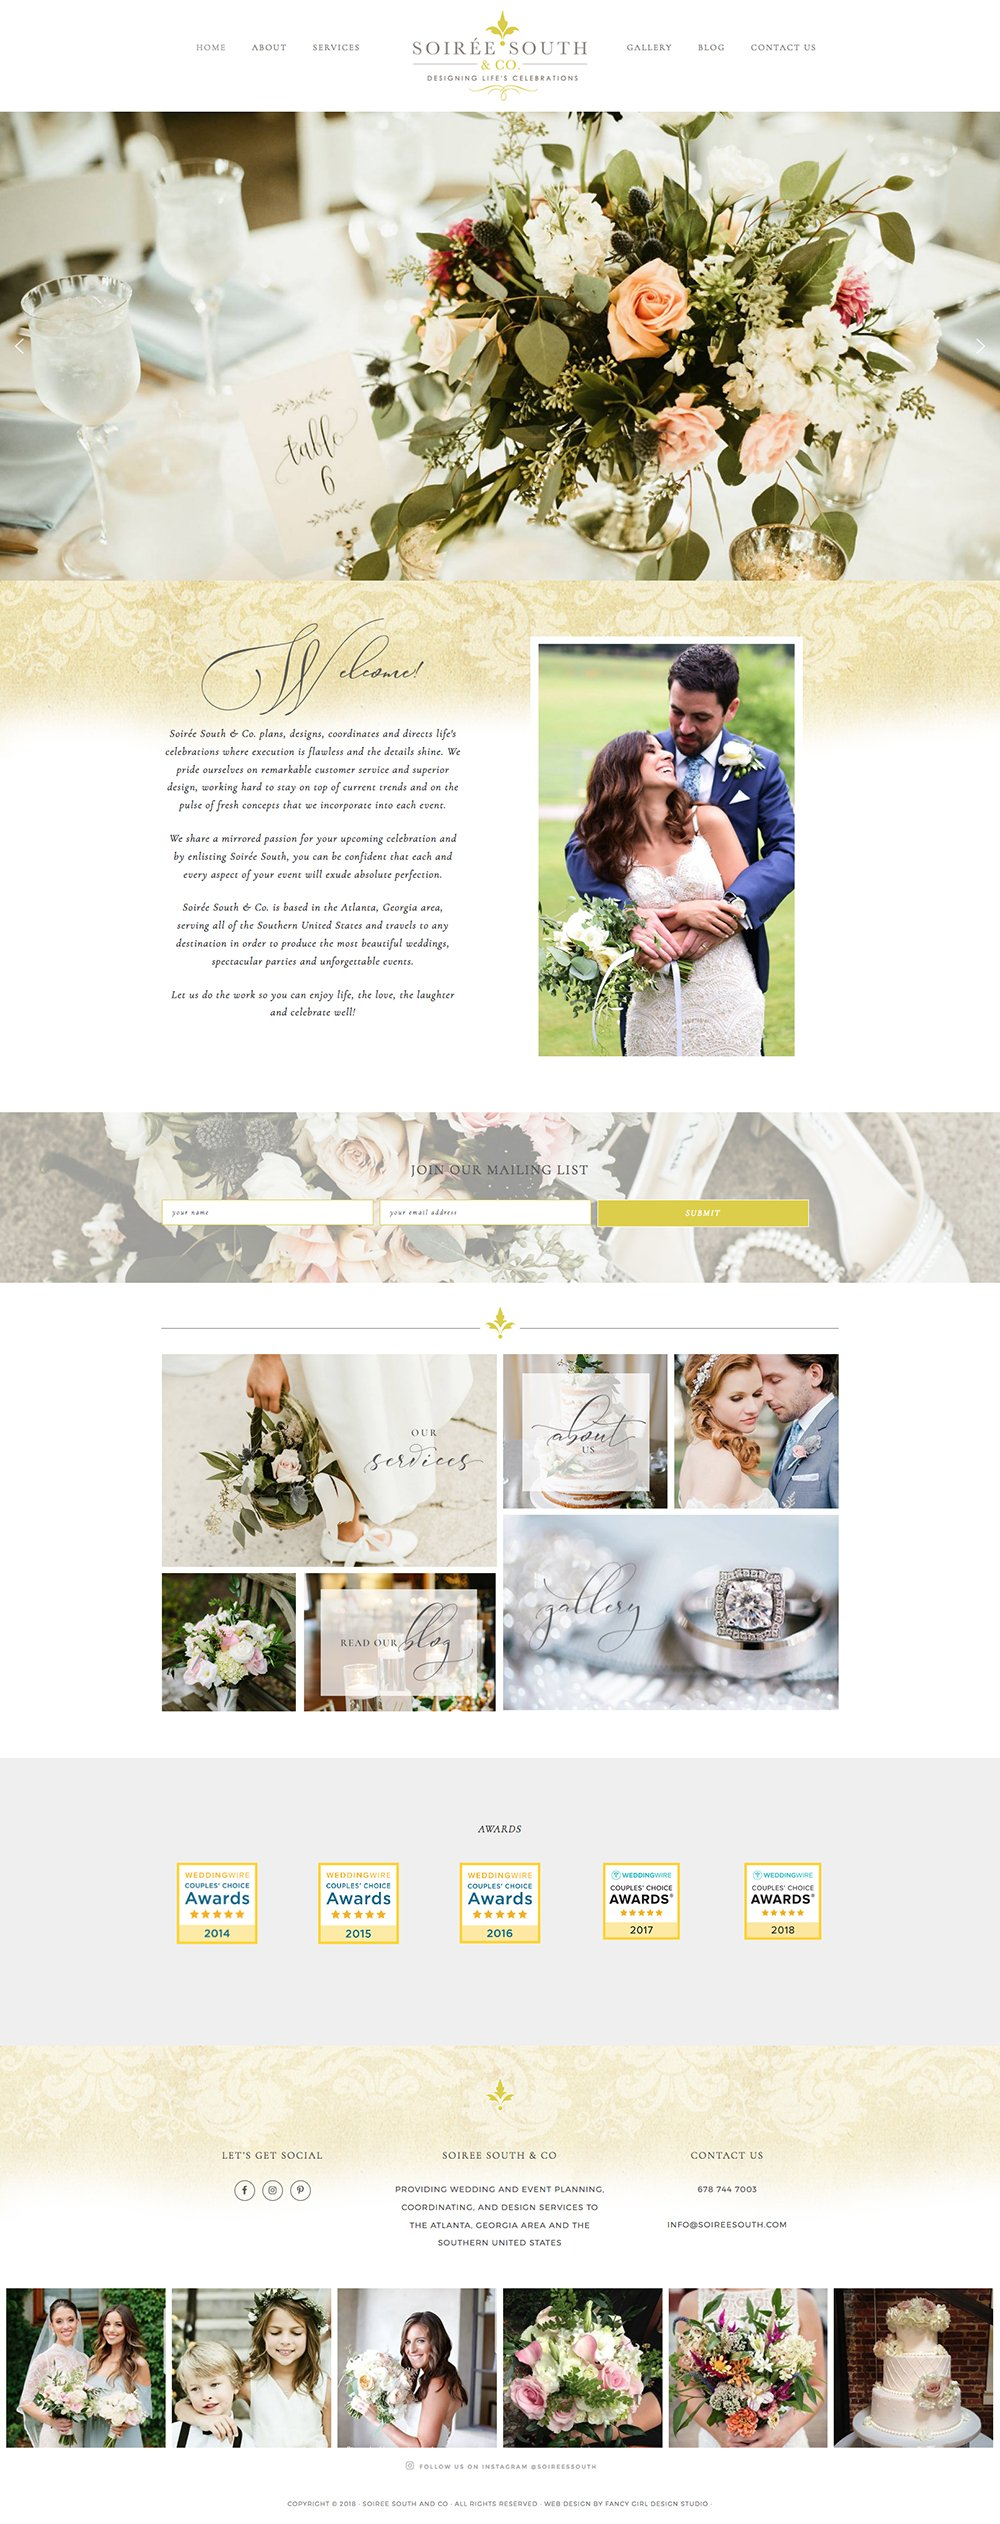 website design for soiree south & co by fancy girl designs